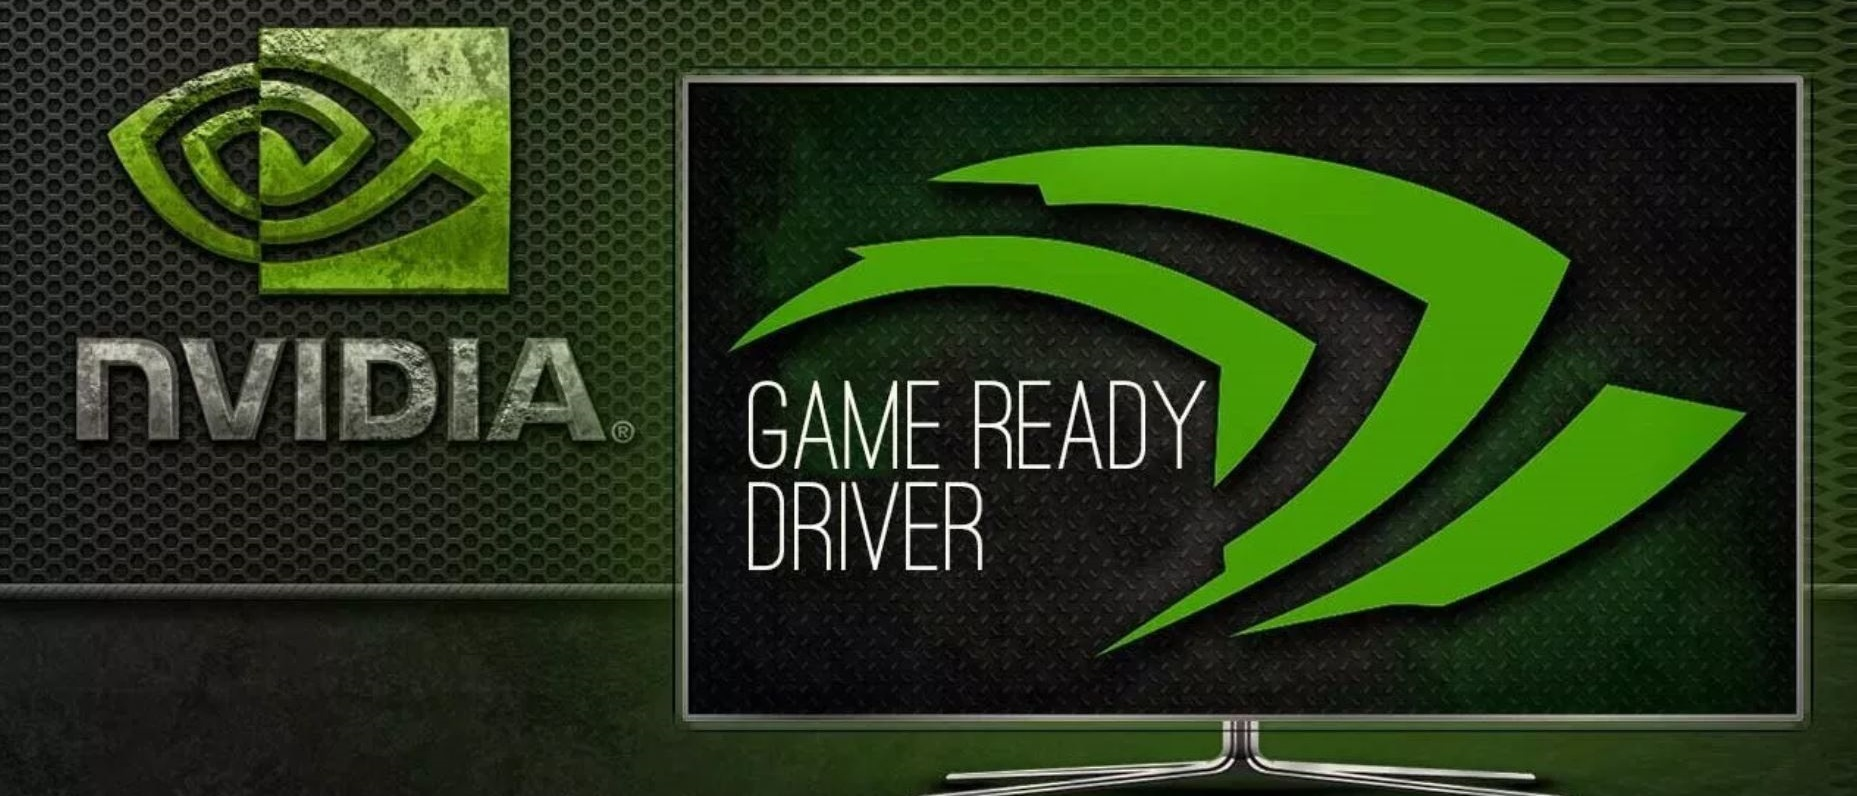 214336-nvidia-game-ready-driver-monster-